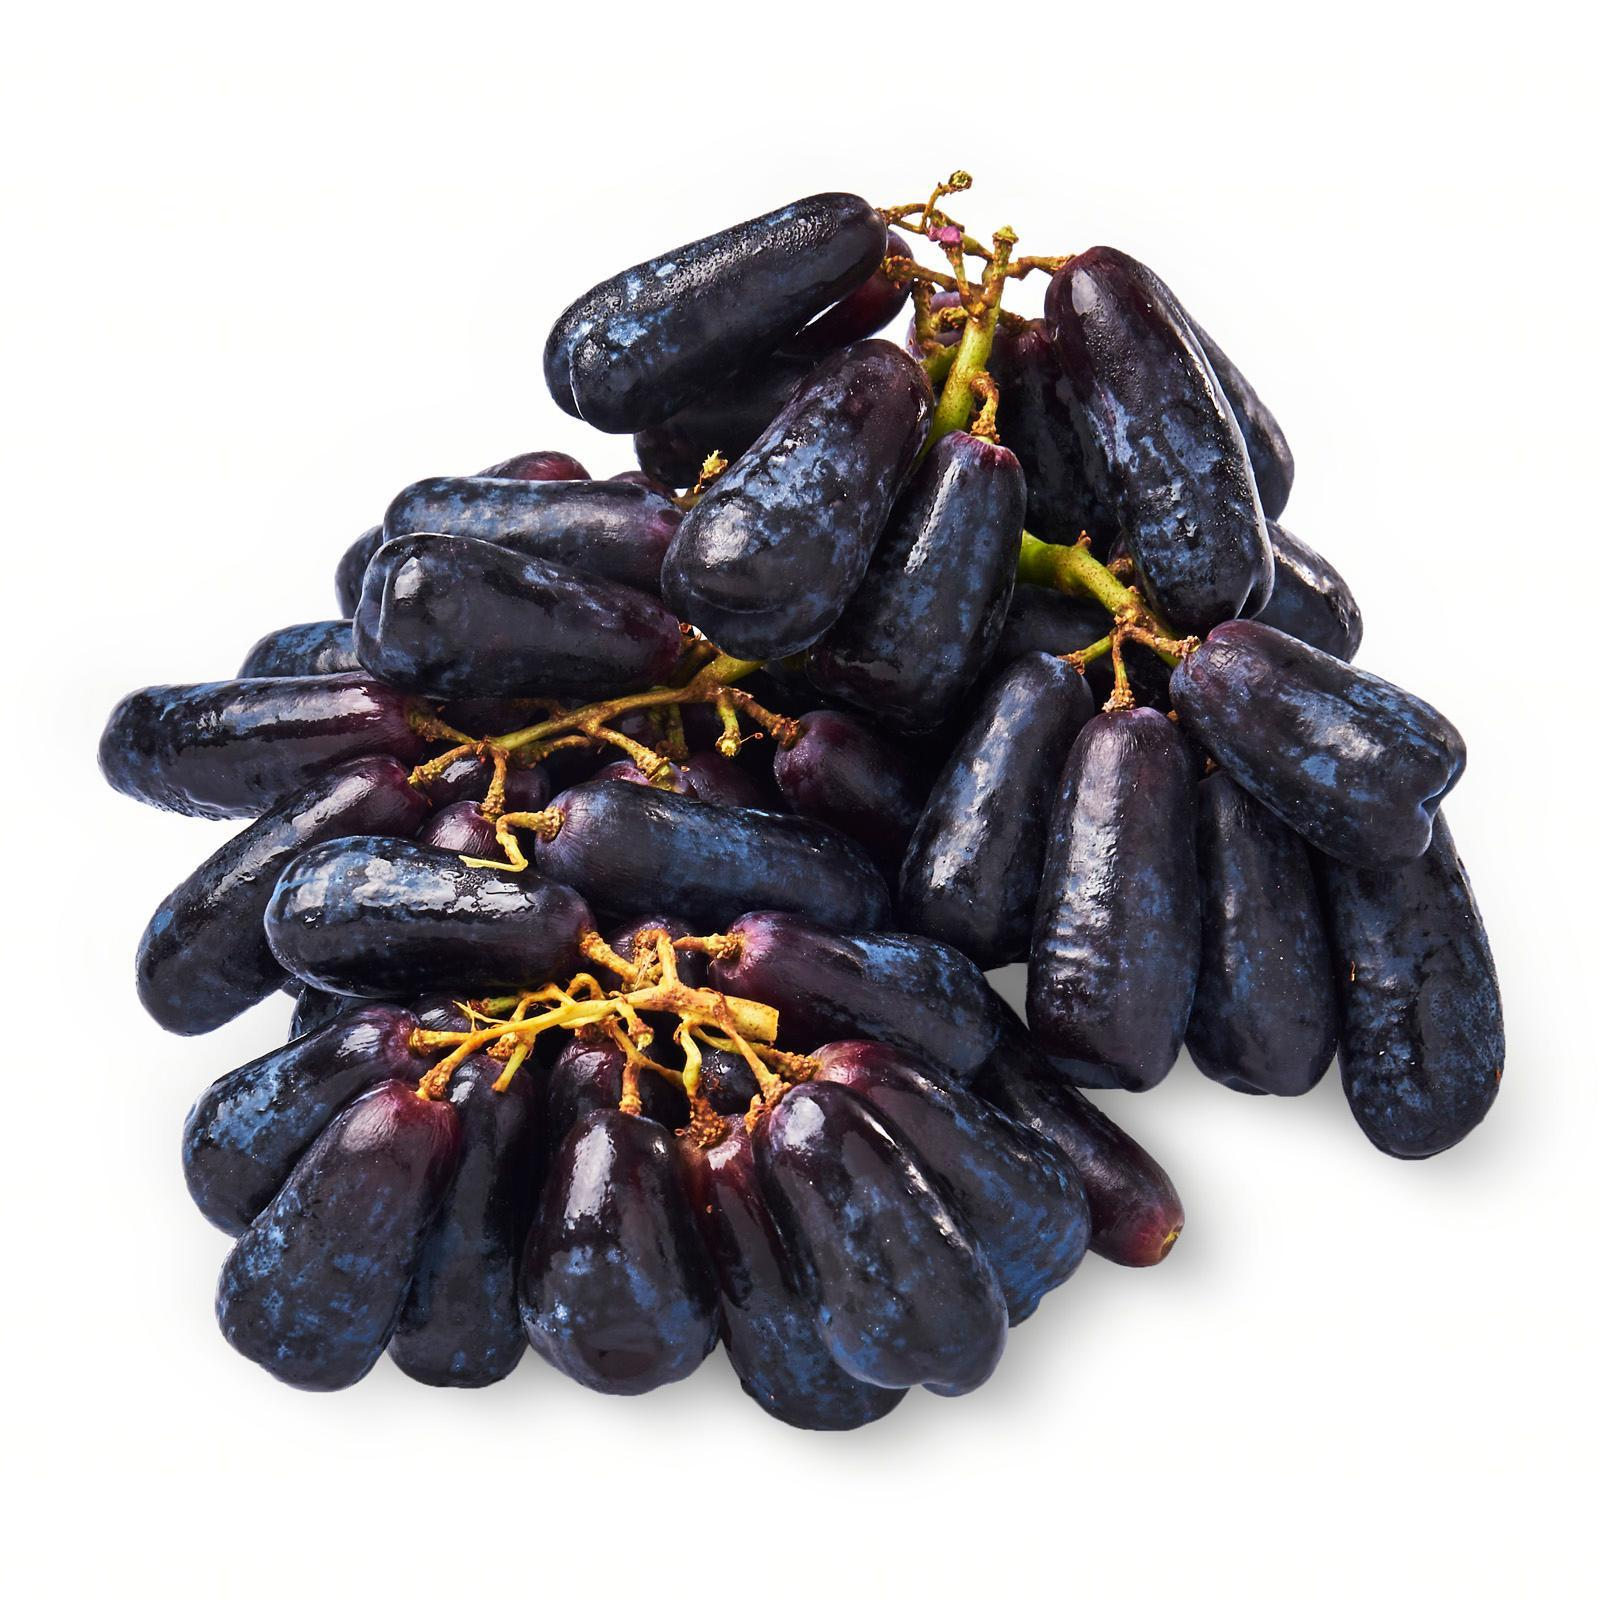 Sweet Sapphire Black Grape By Redmart